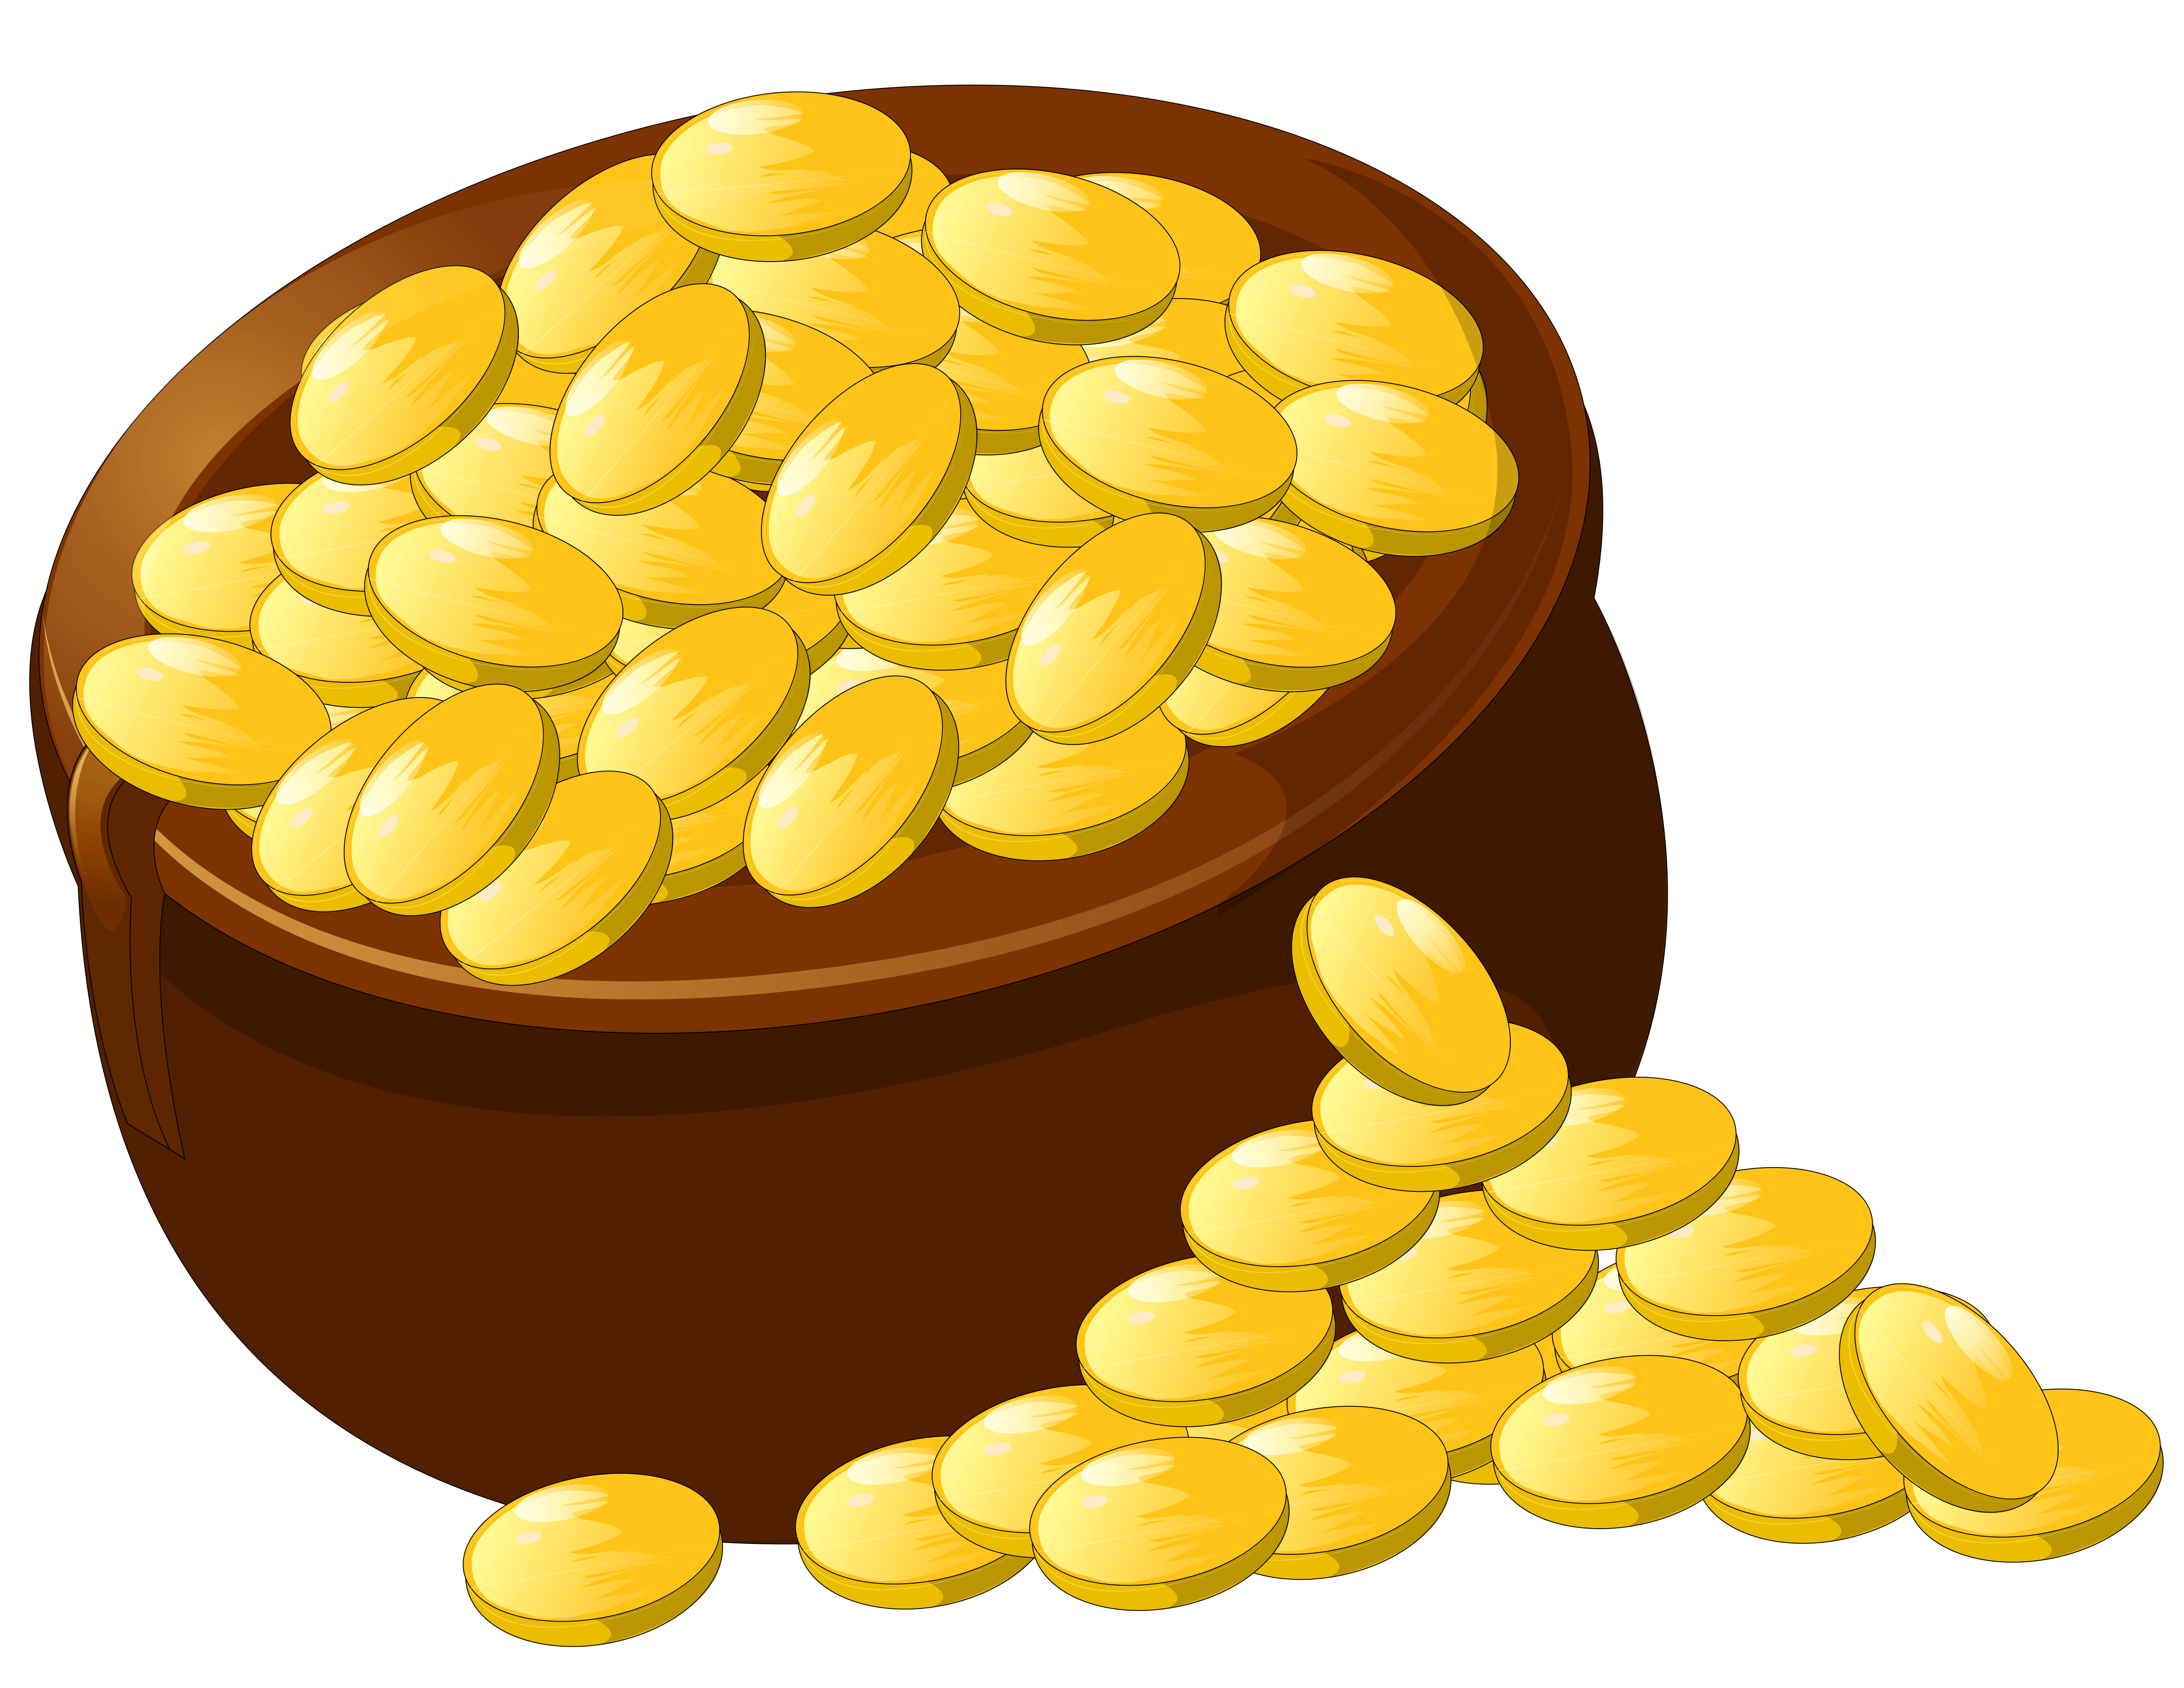 Gold clipart #3, Download drawings